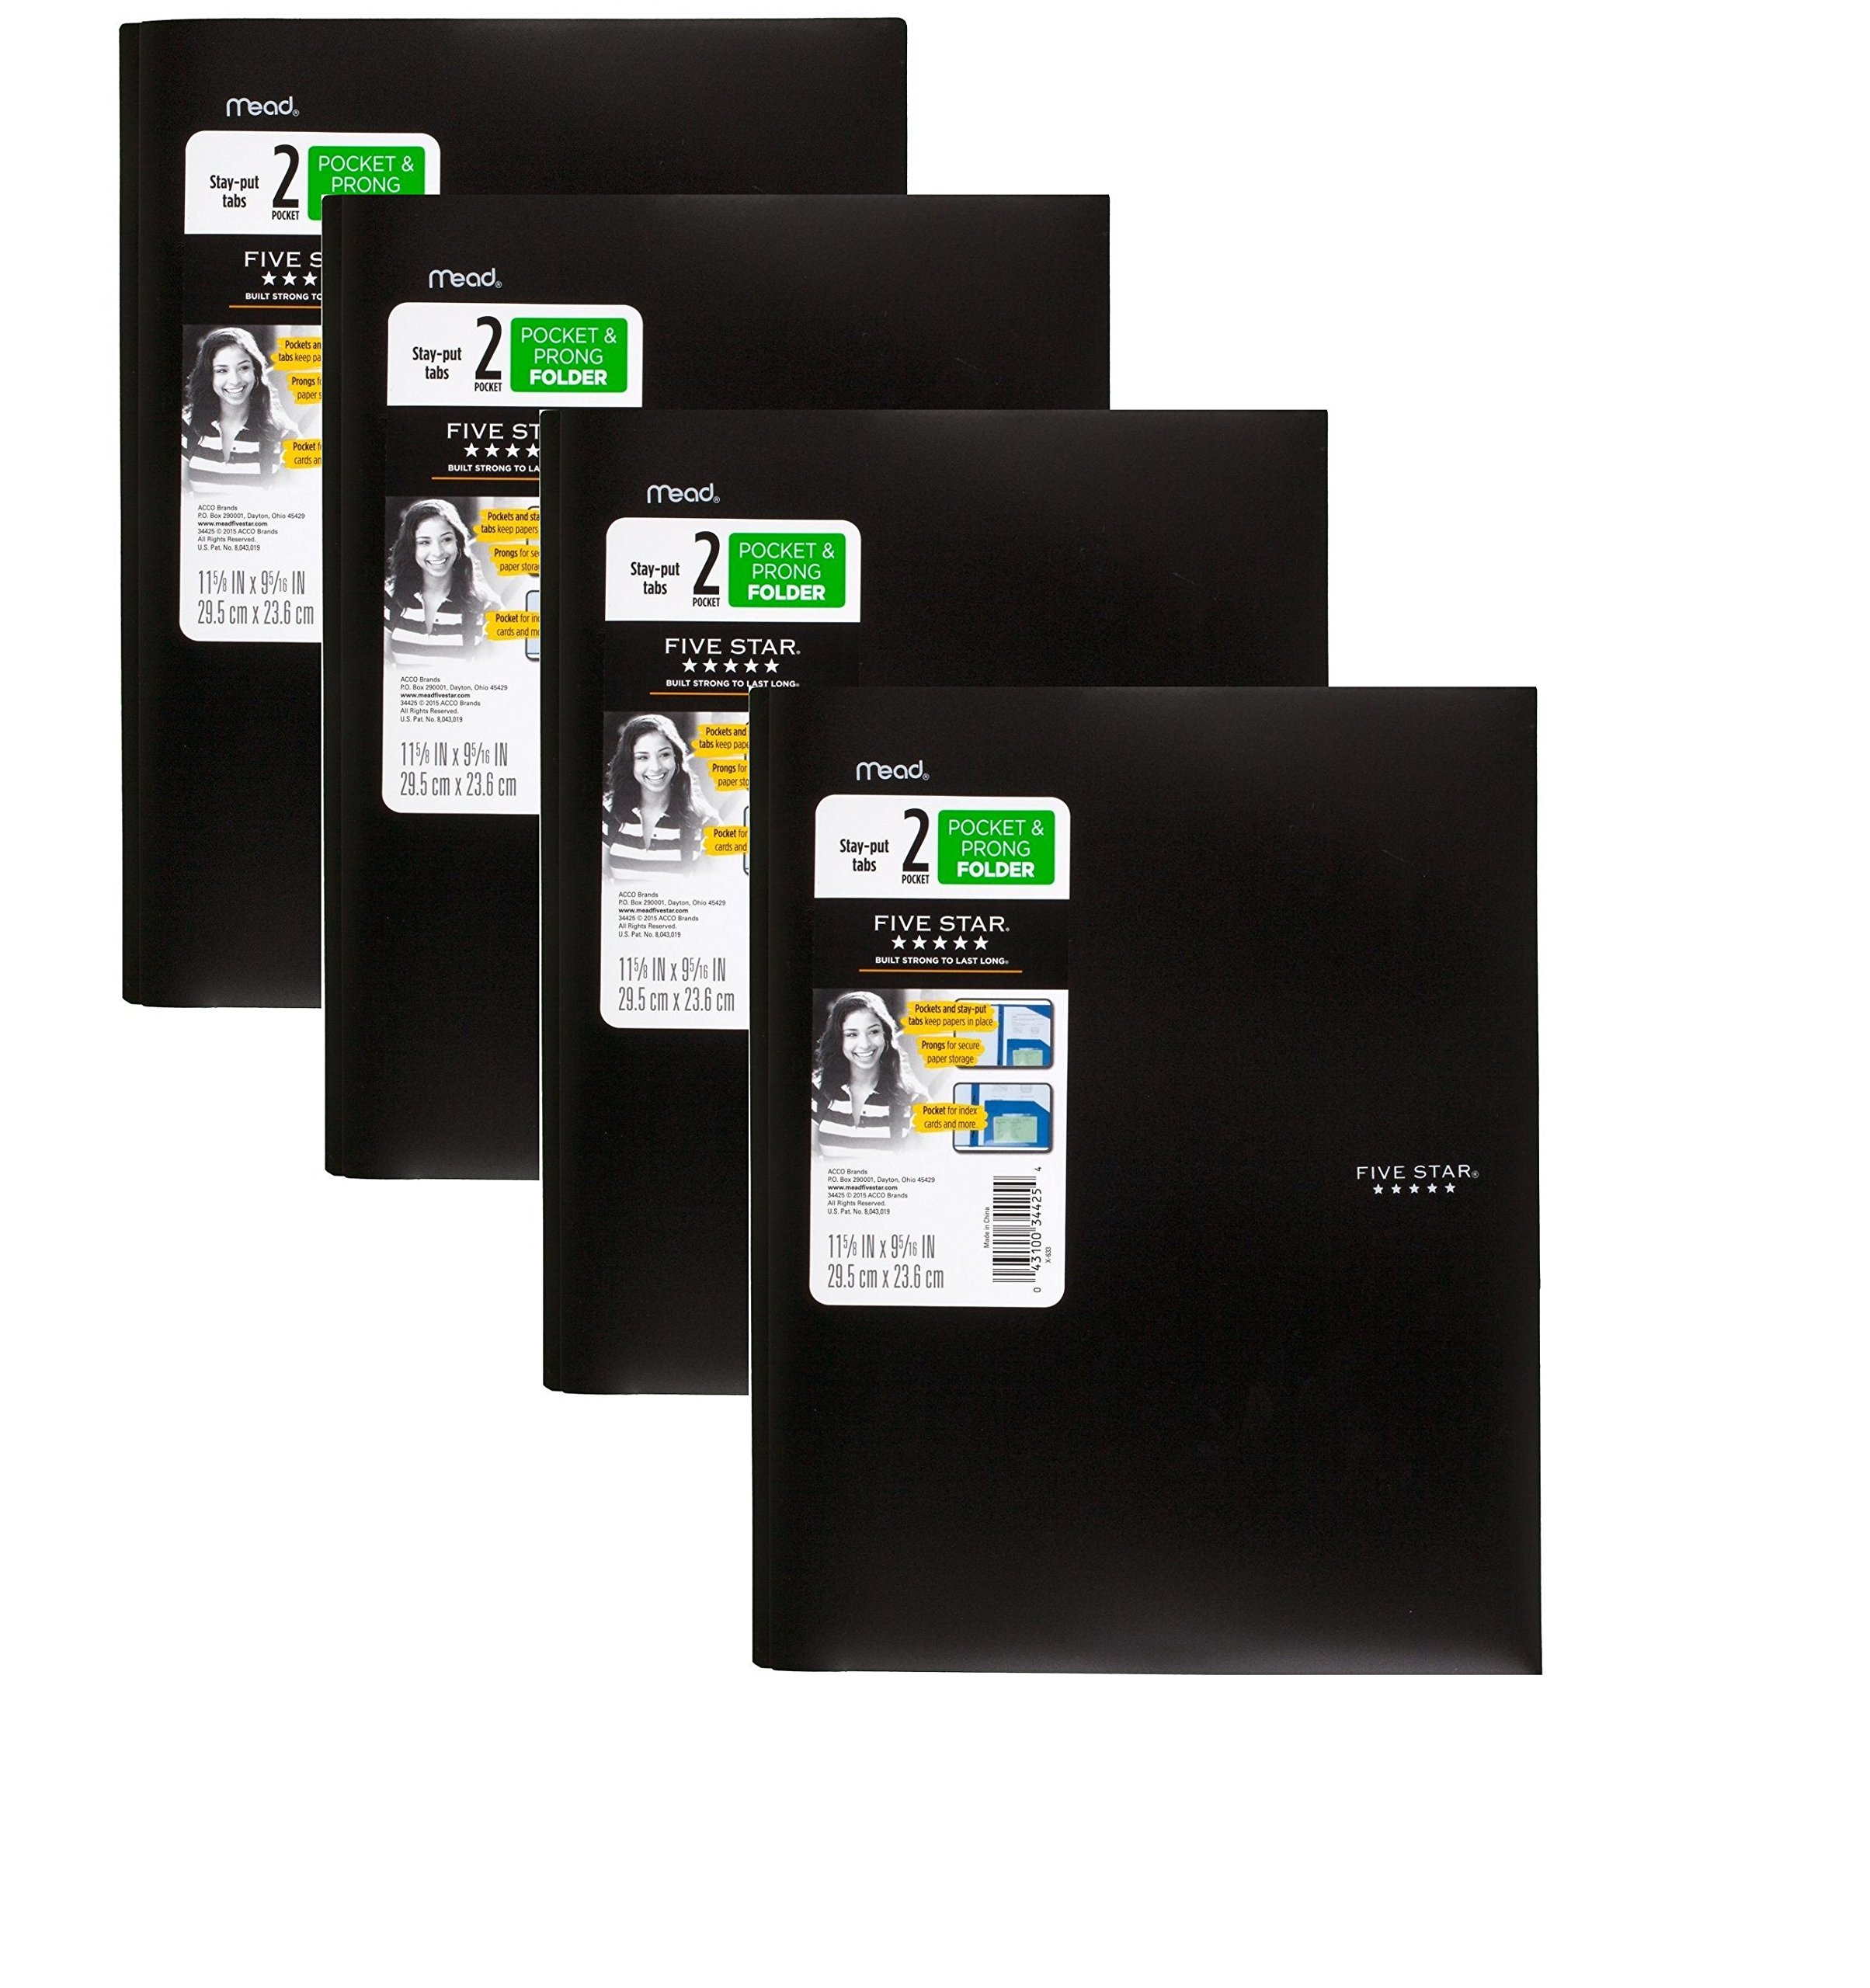 Five Star 2 Pocket Folders with Prong Fasteners, Stay-Put Folder, Folders with Pockets, Assorted Colors, 4 Pack (38064) (Black, 4Pack)